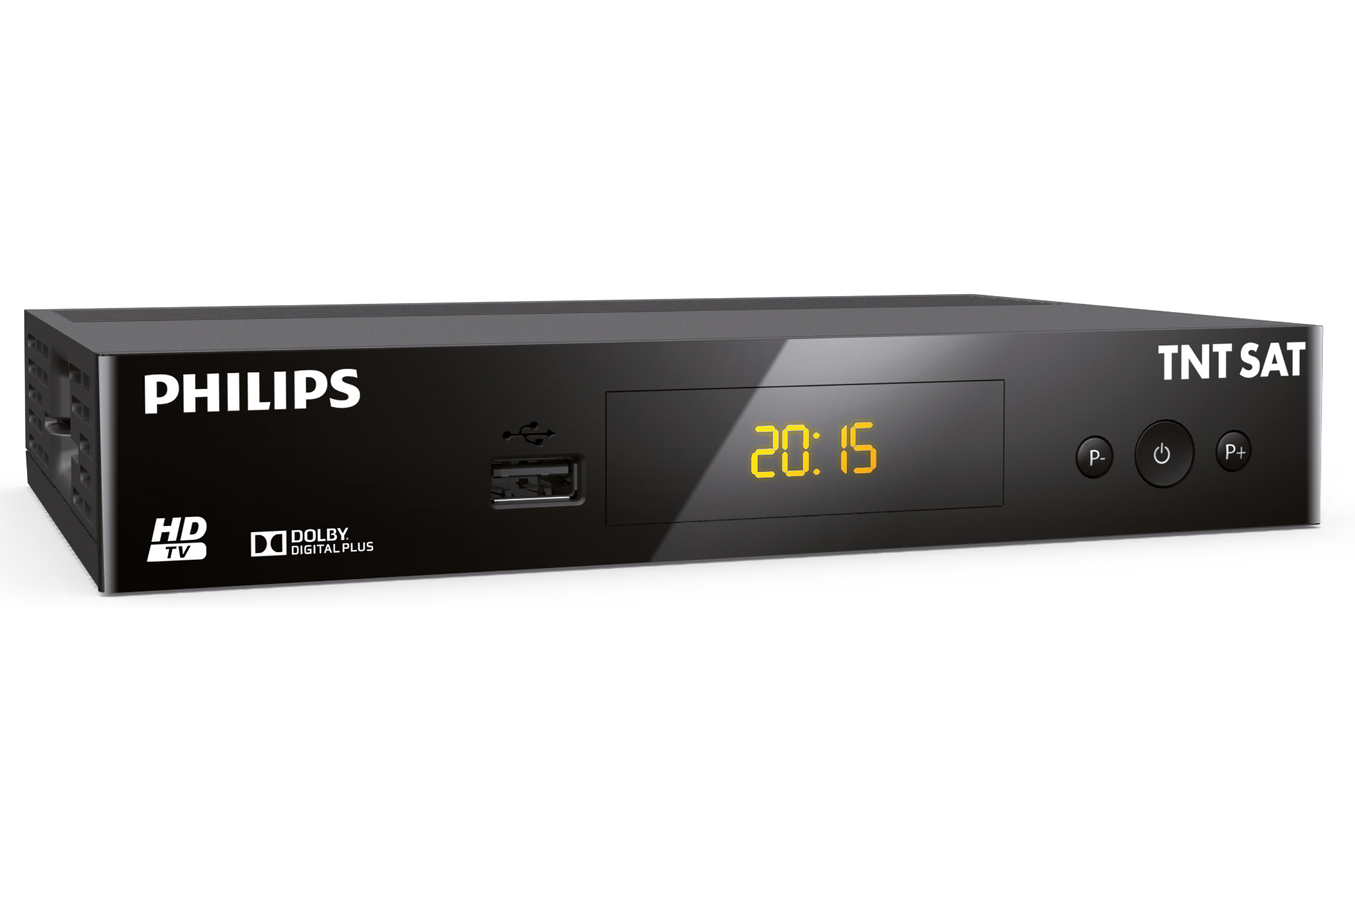 R cepteur tnt par satellite philips dsr 3231 tntsat - Tnt par satellite sans decodeur ...